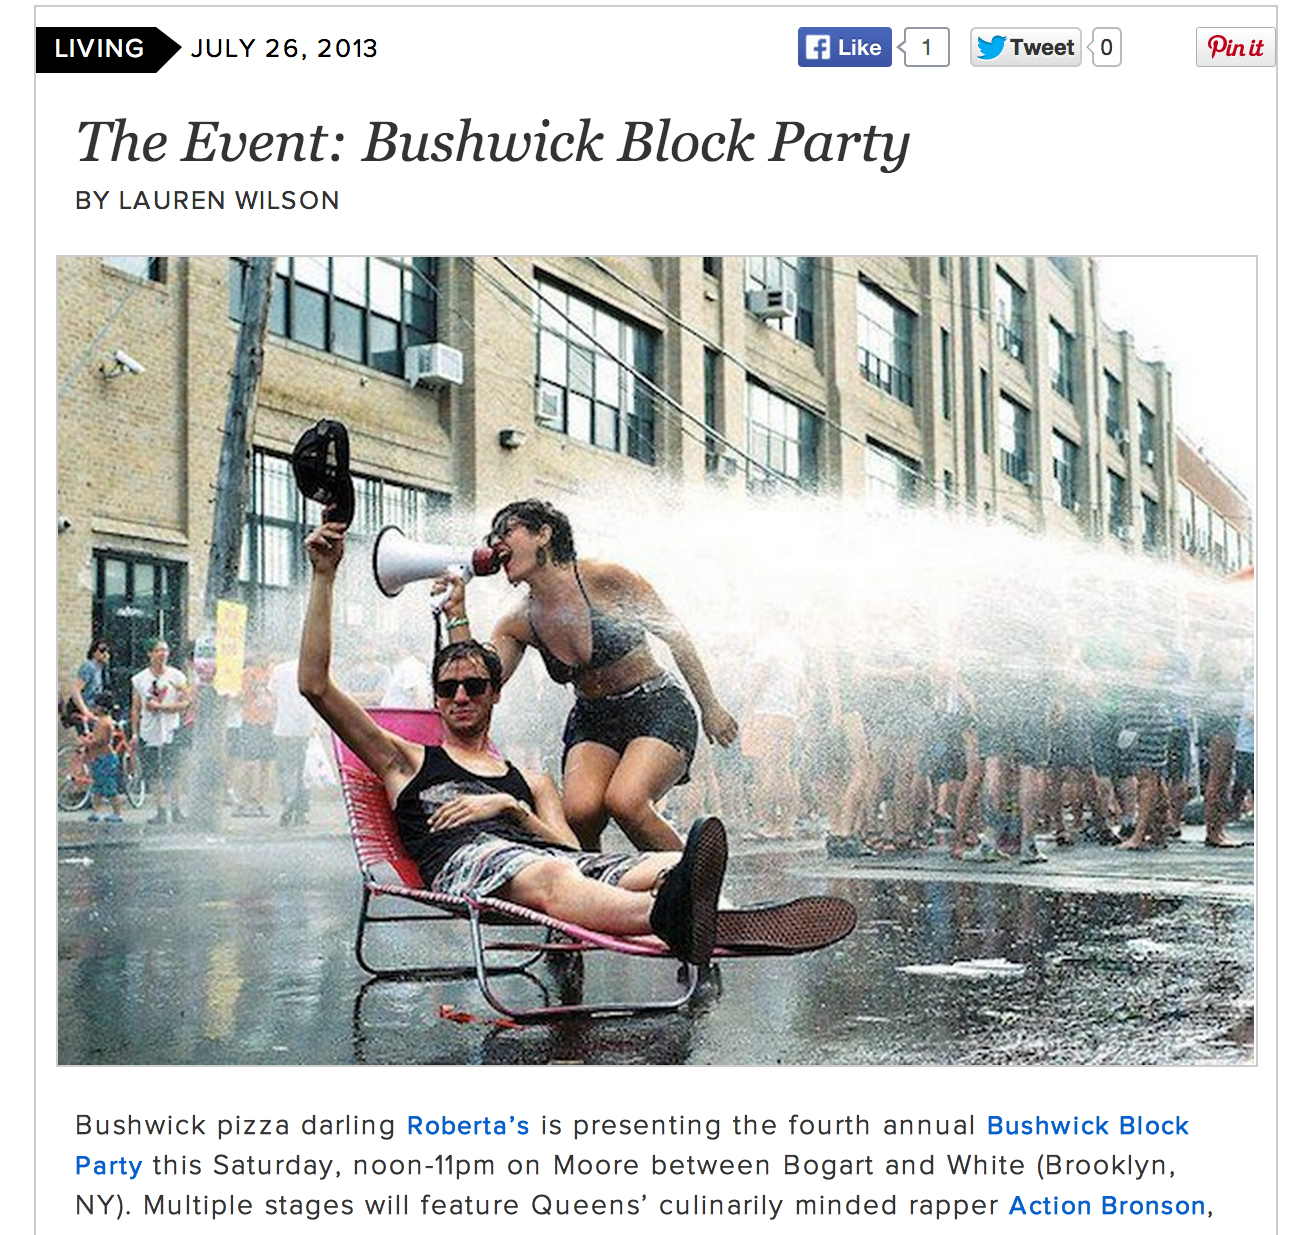 Bushwick-Block-Party-1300.jpg